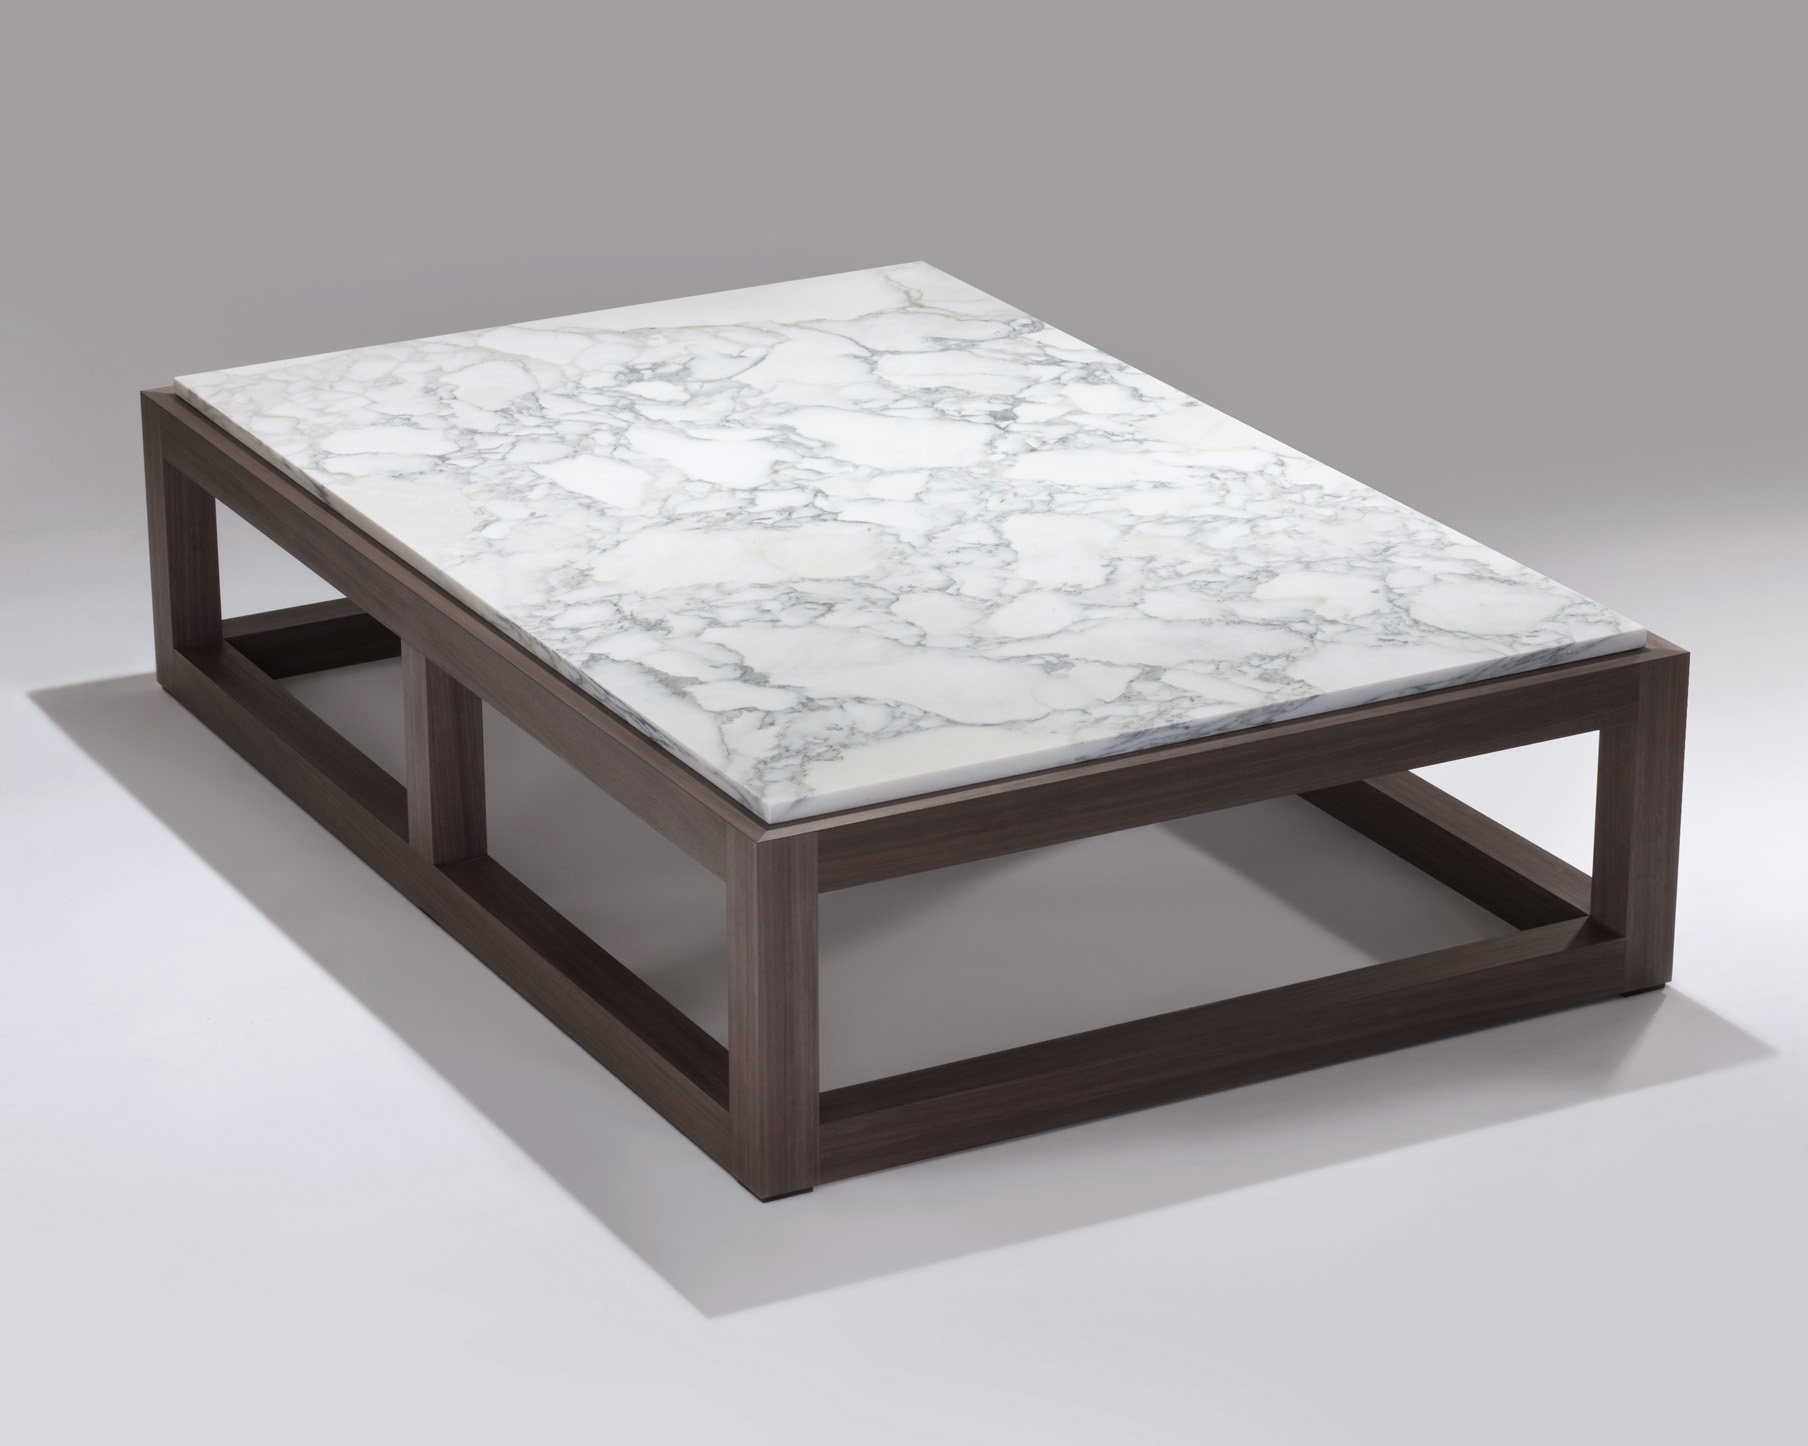 Bespoke Coffee Table Marble Slab Coffee Table